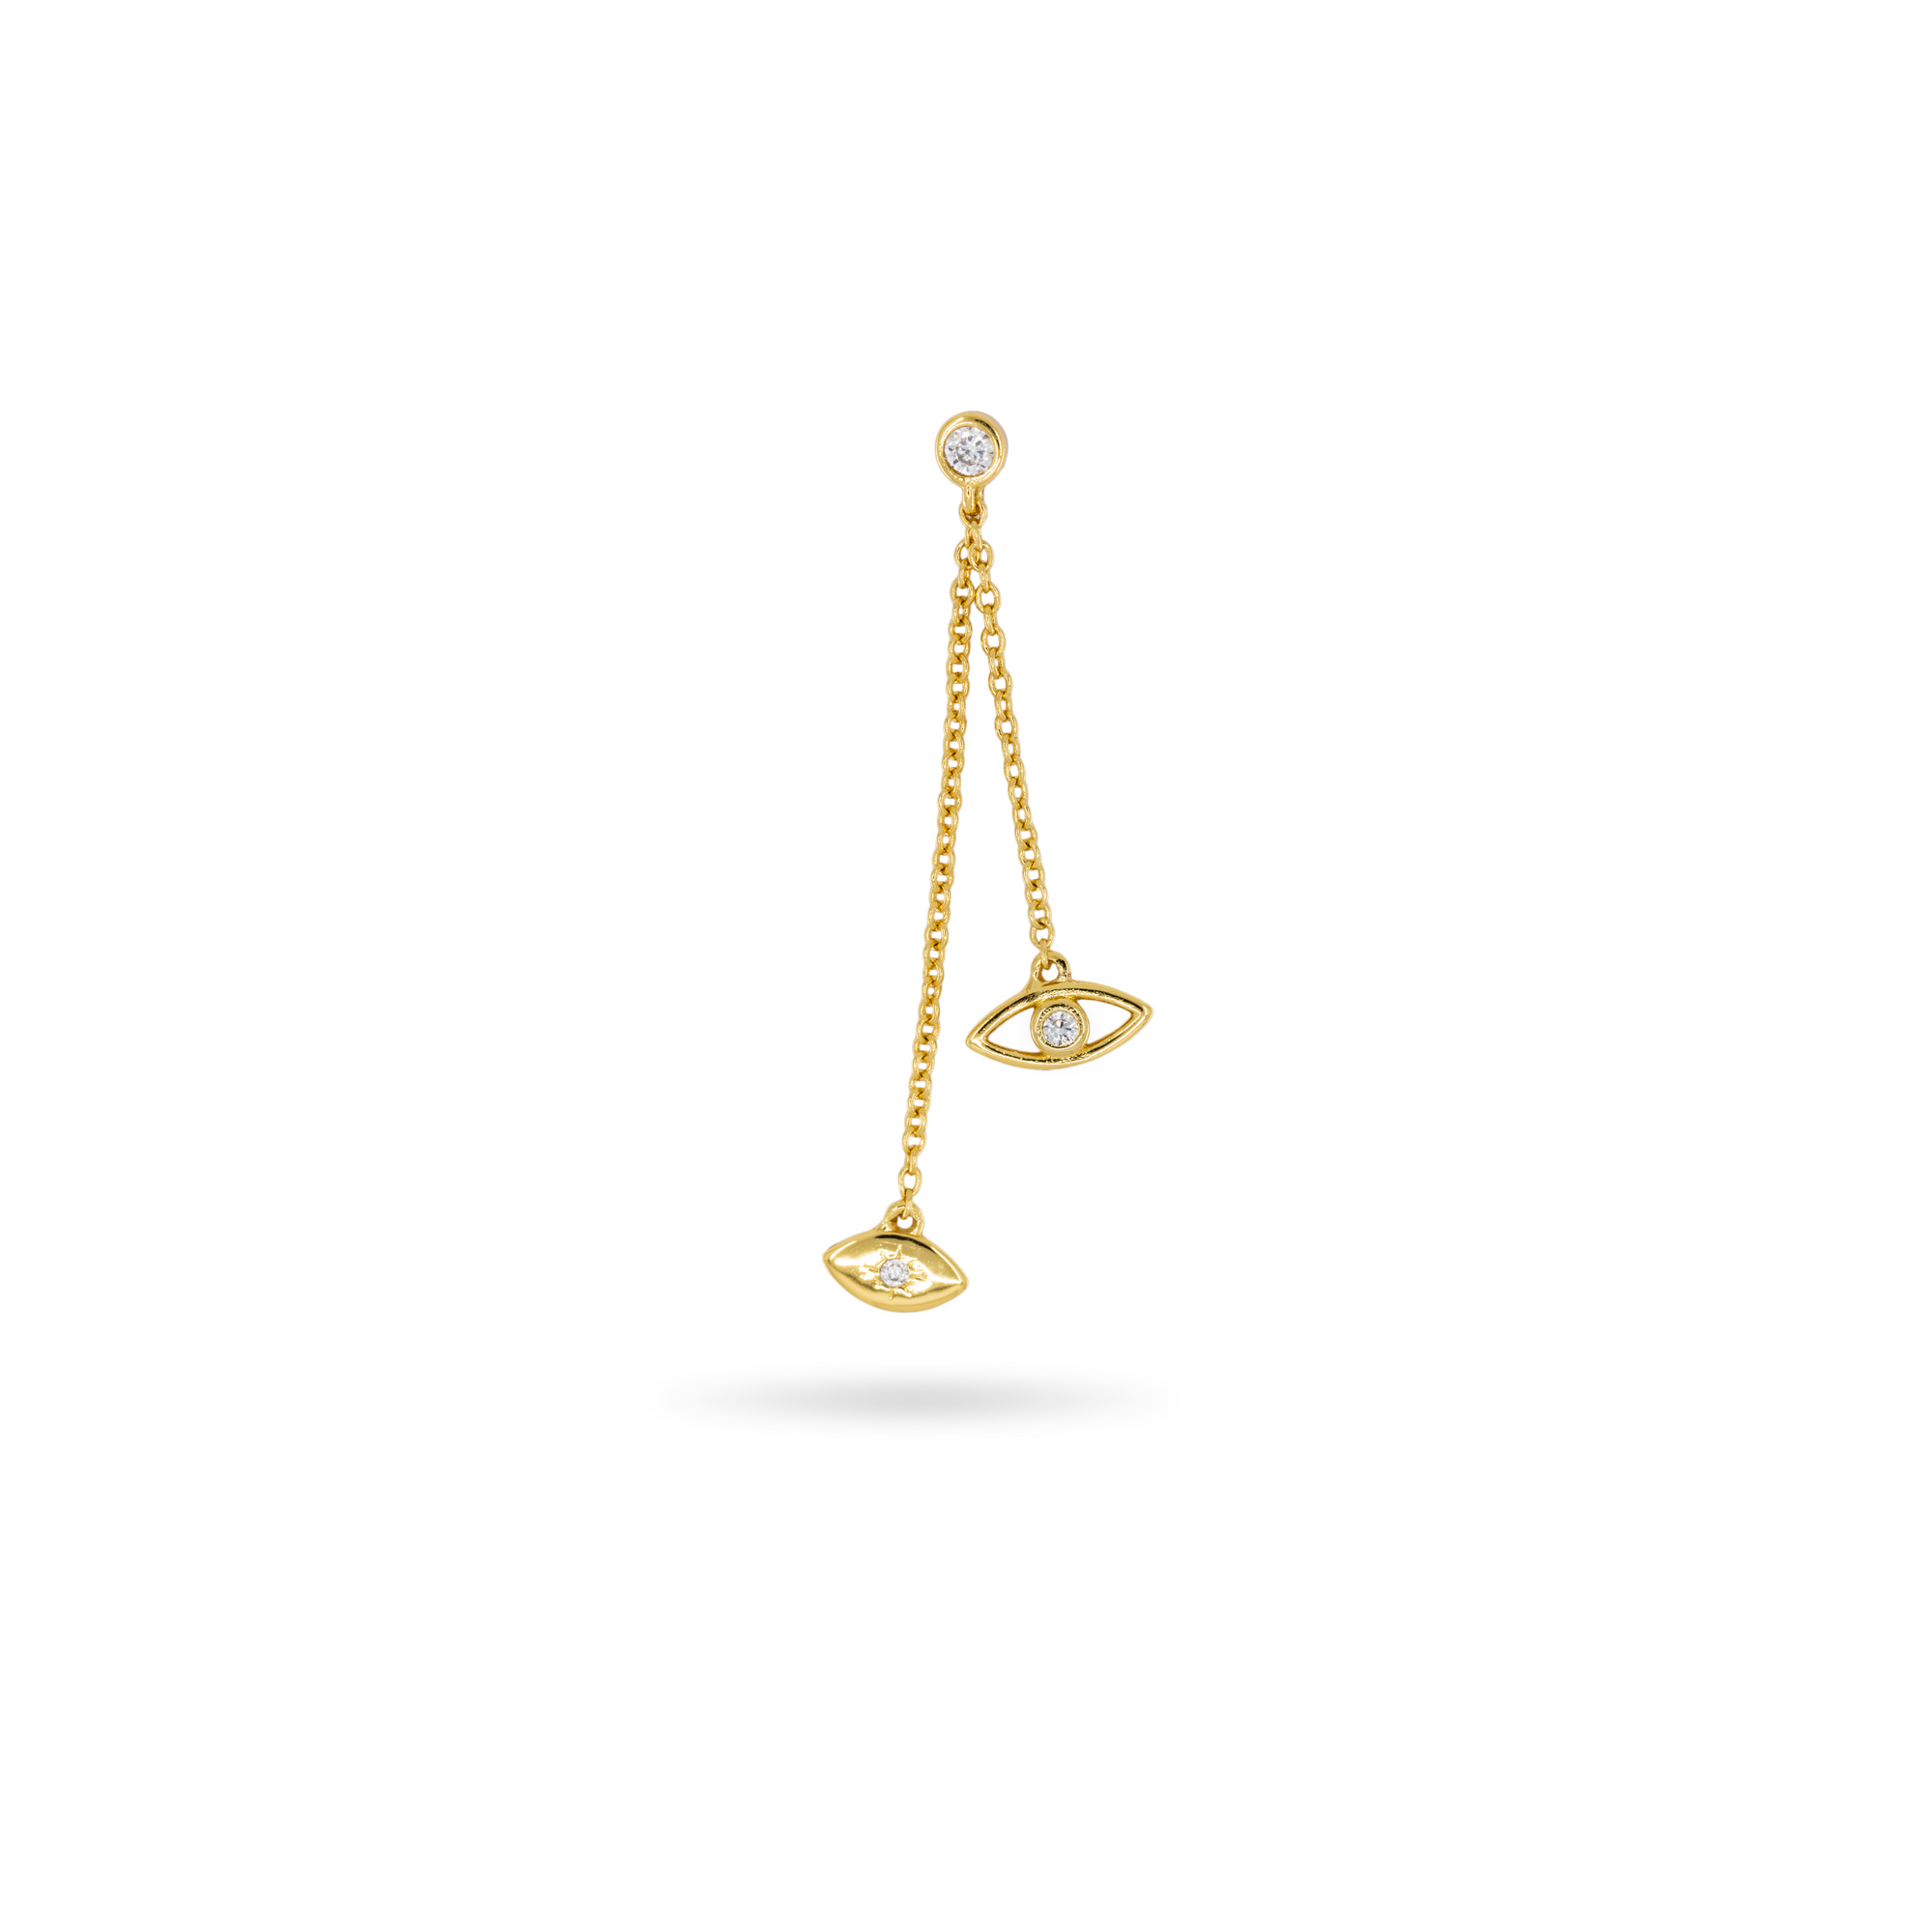 The evil eye dangle is a gold earring that hangs off the ear and has clear gemmed accents.